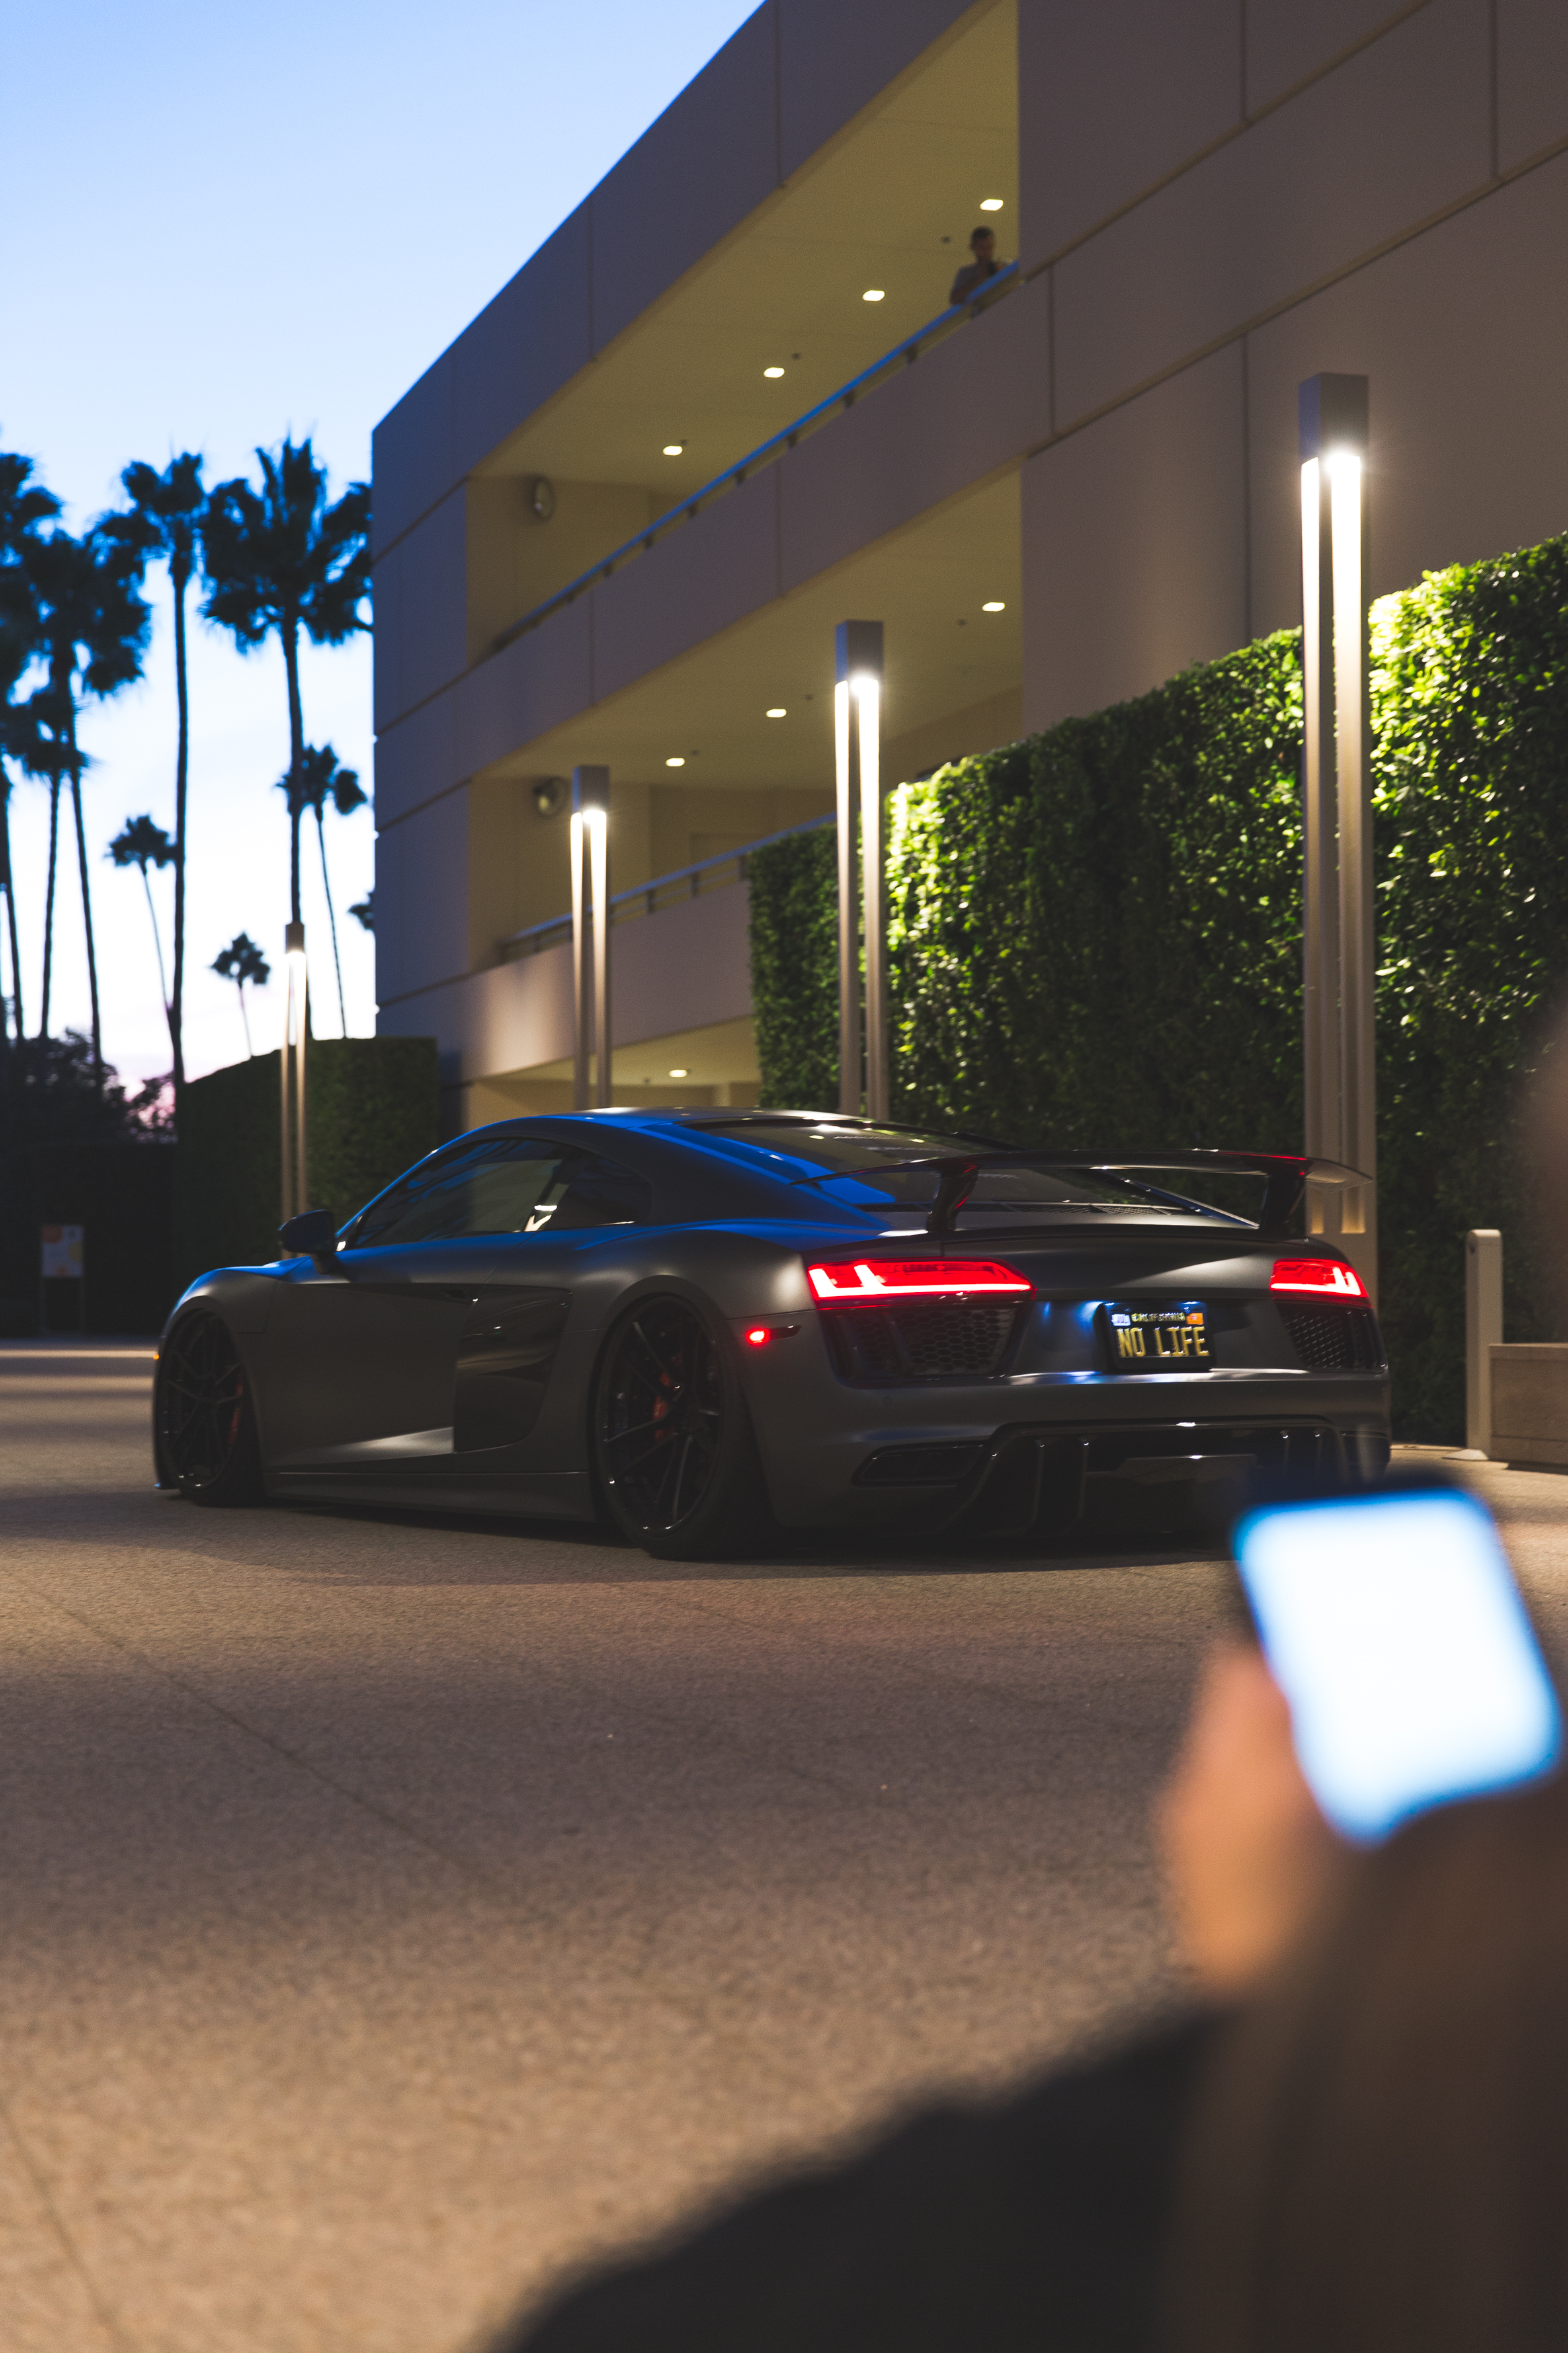 Stay_Driven_Page_R8_Newport-39.jpg